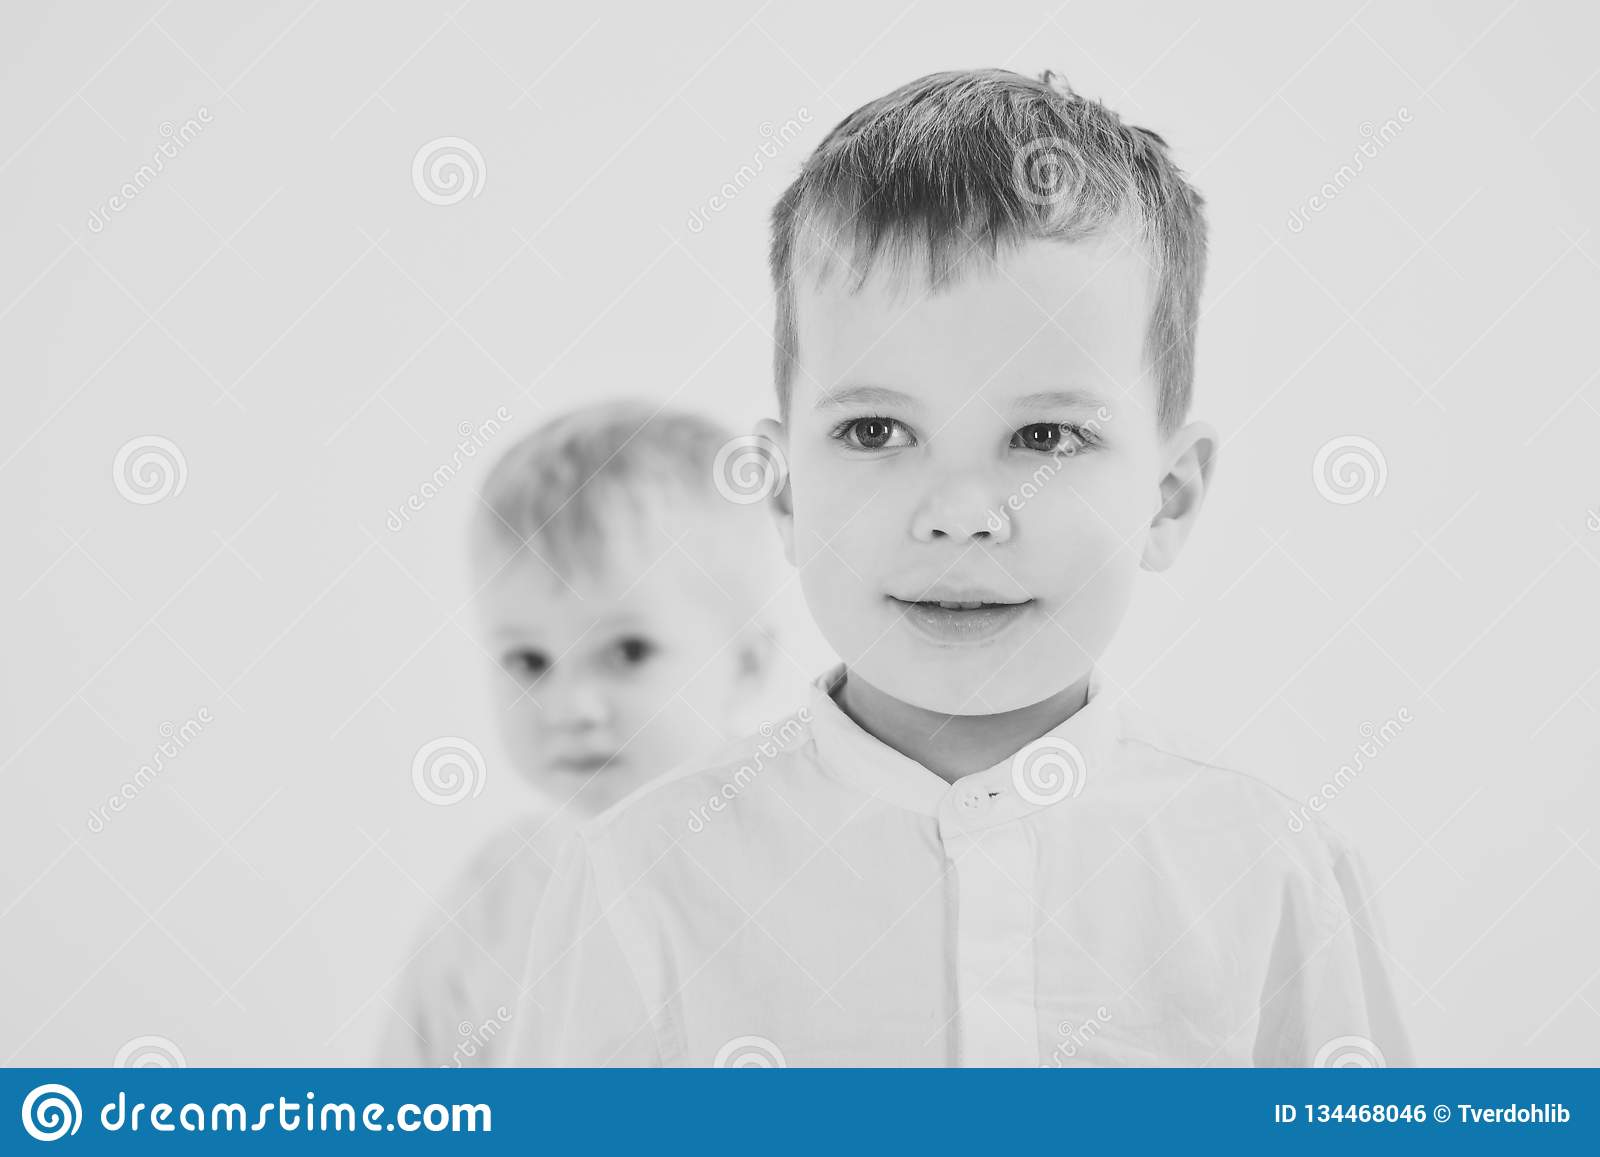 c499208dd Happy family, values, brothers. Little boys in white shirt, business. Kid  fashion, style and look, boss baby. Childhood and happiness, little boys.